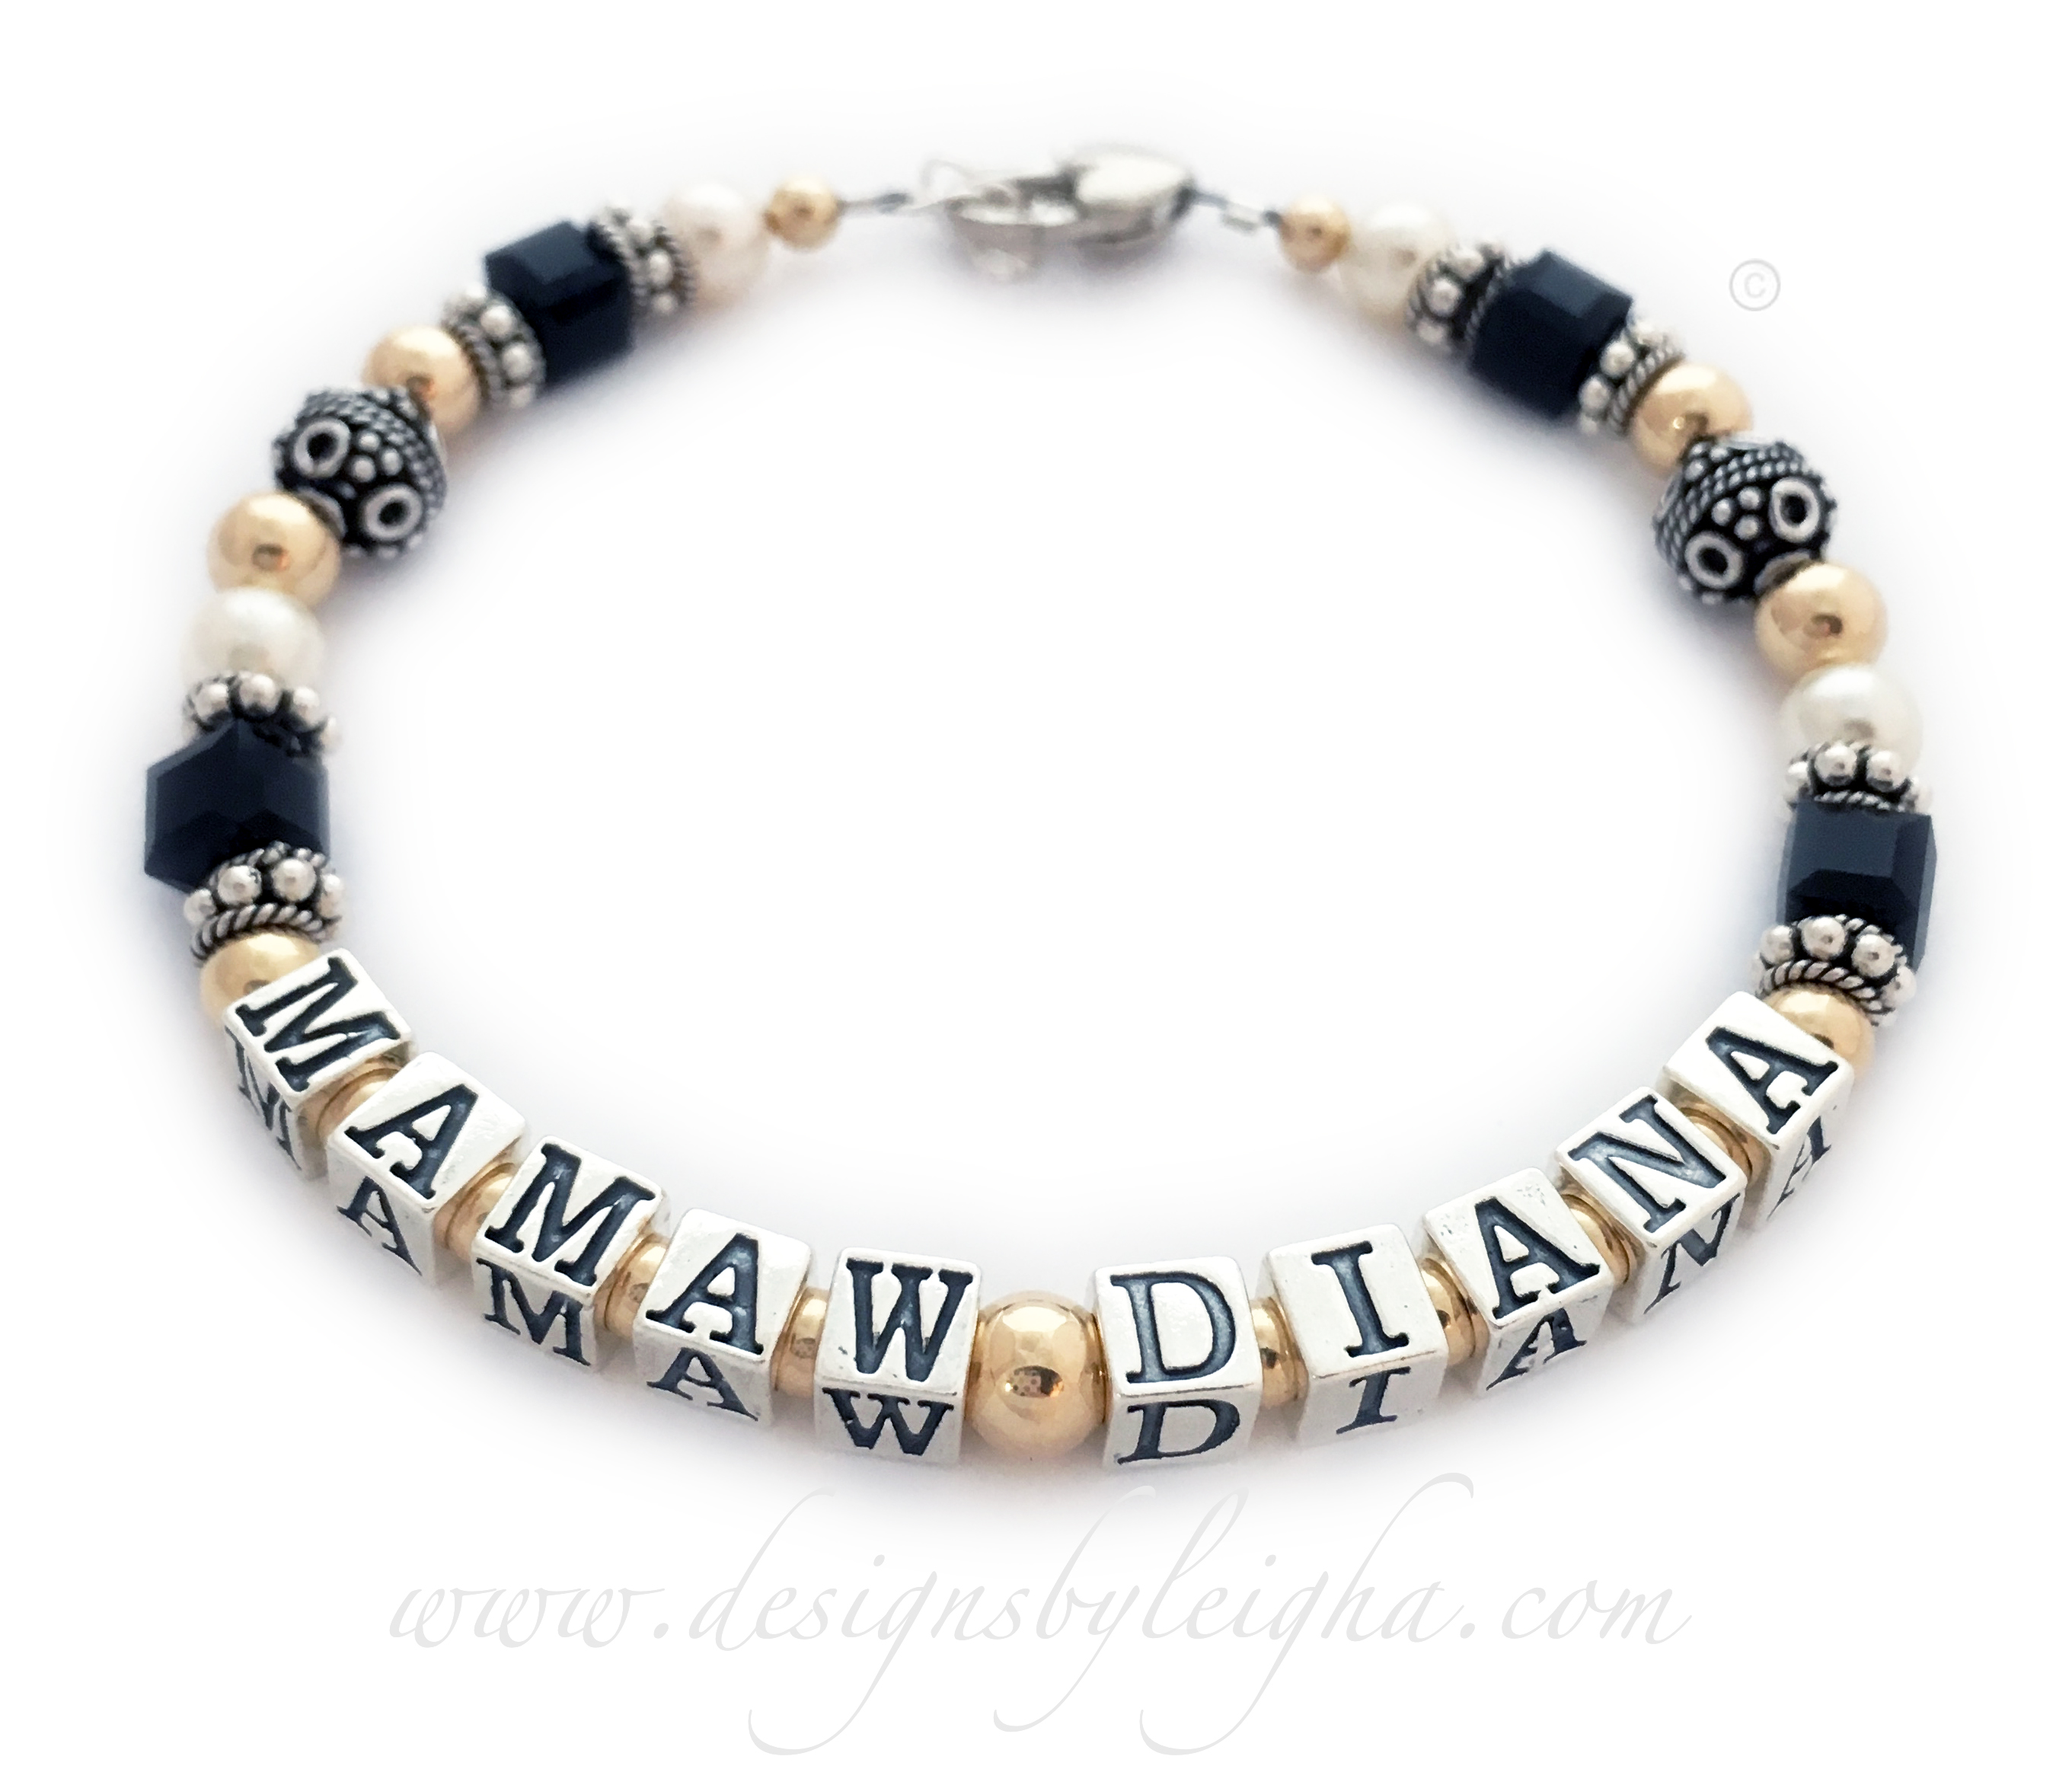 DBL-Gma13-1 string bracelet   Enter: MAMAW DIANA / Black  This Grammy Bracelet is shown with DIANA and Mamaw. You choose the name(s). They also picked black Swarovski crystals and upgraded to the Heart Lobster Clasp with an extension clasp.